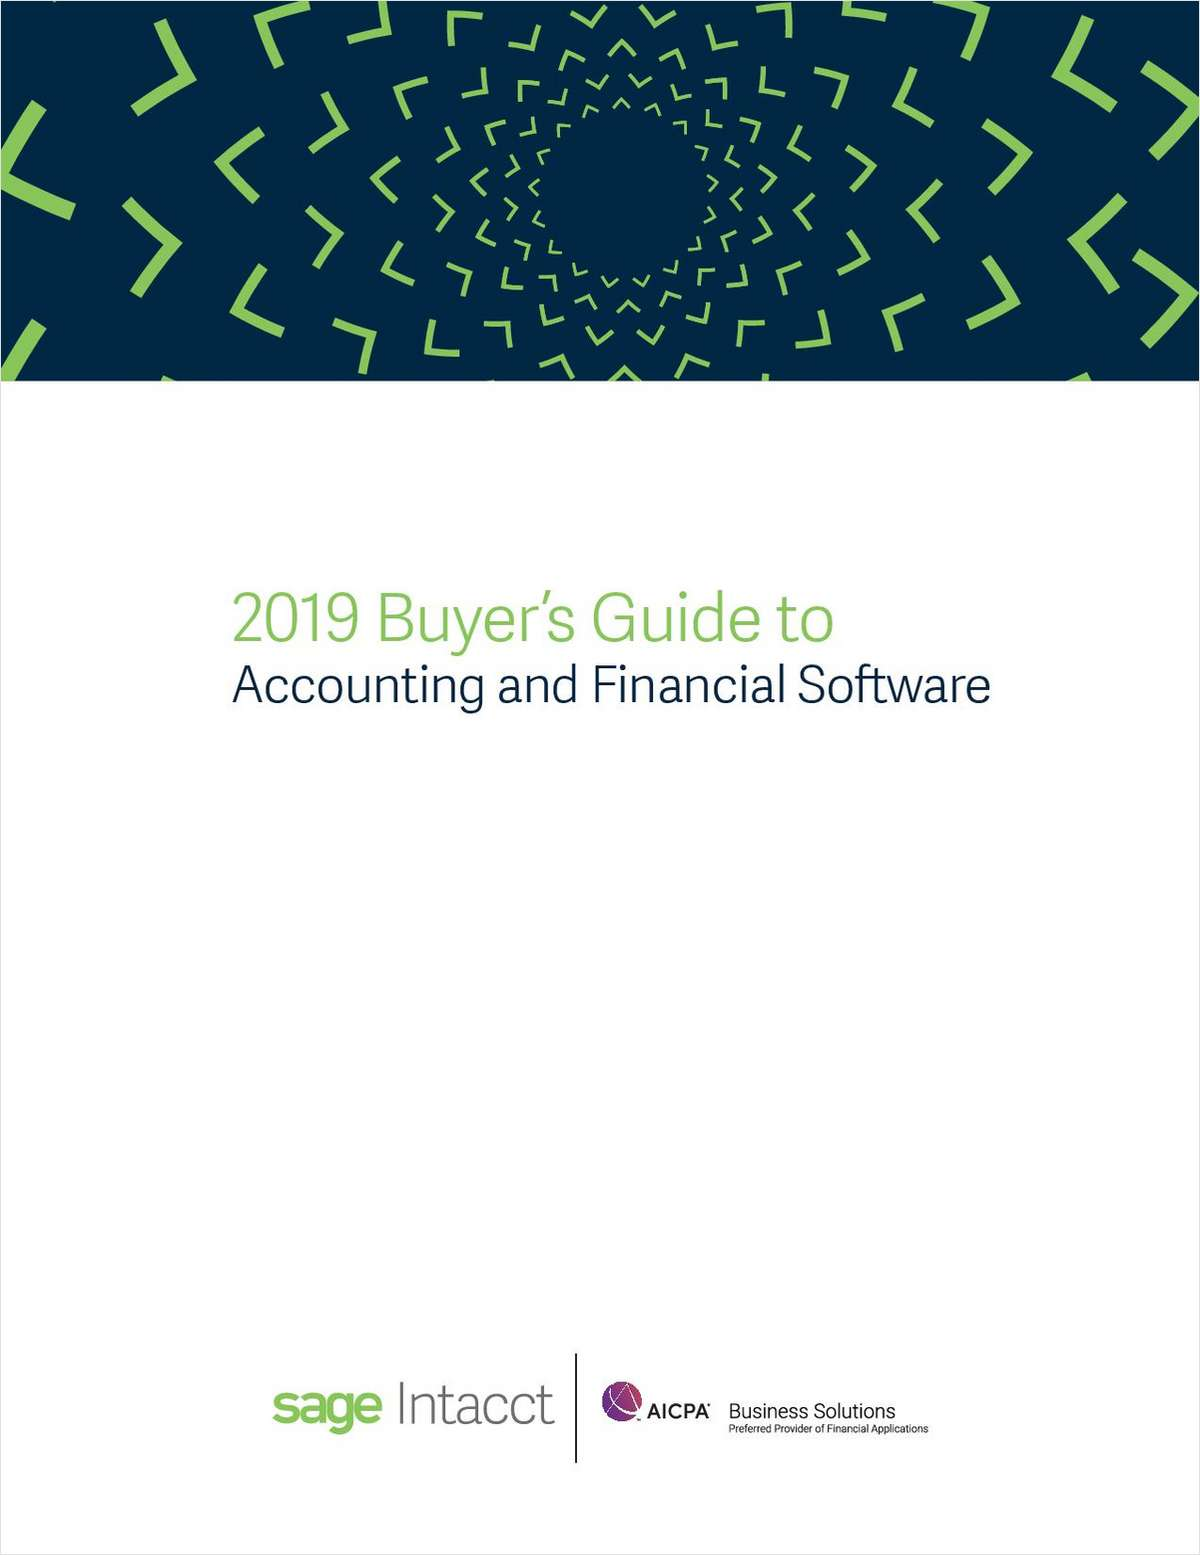 2019 Buyer's Guide to Accounting and Financial Software